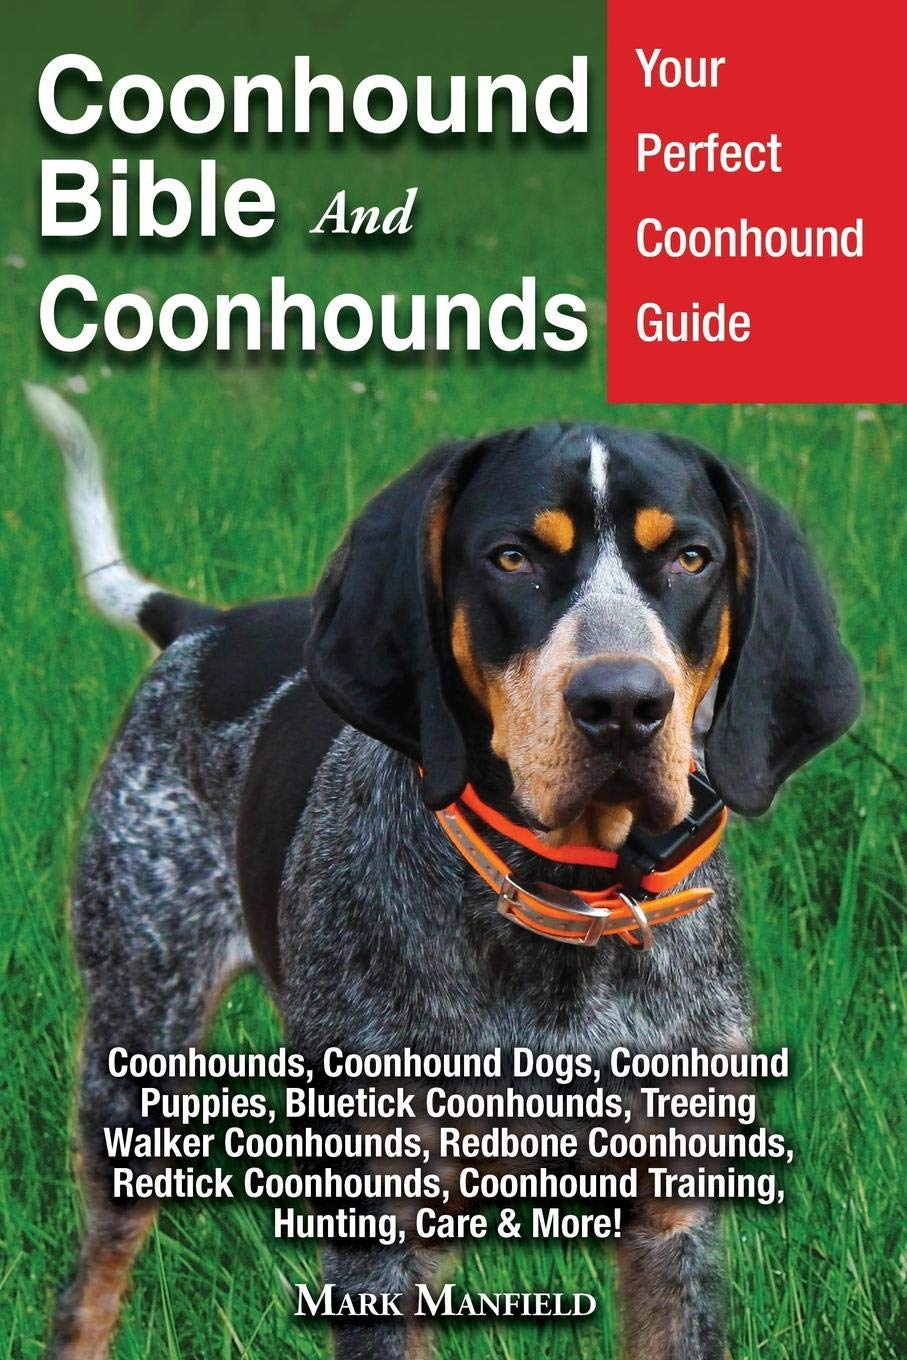 Coonhound Bible and Coonhounds: Your Perfect Coonhound Guide Coonhounds, Coonhound Dogs, Coonhound Puppies, Bluetick…